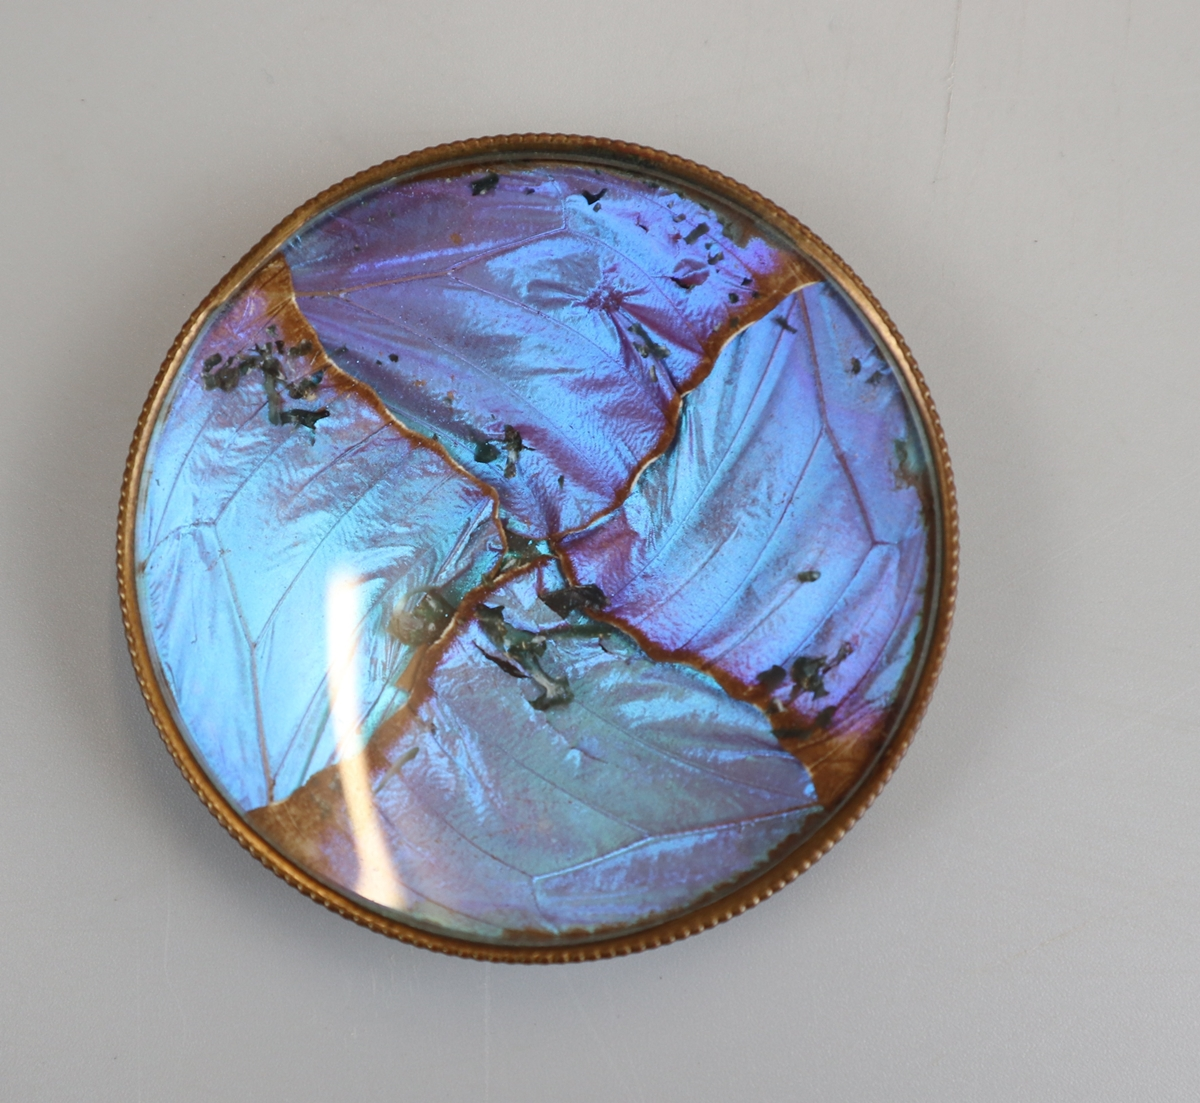 Thomas L Mott - Butterfly wing pin dishes circa 1875 - Image 4 of 5